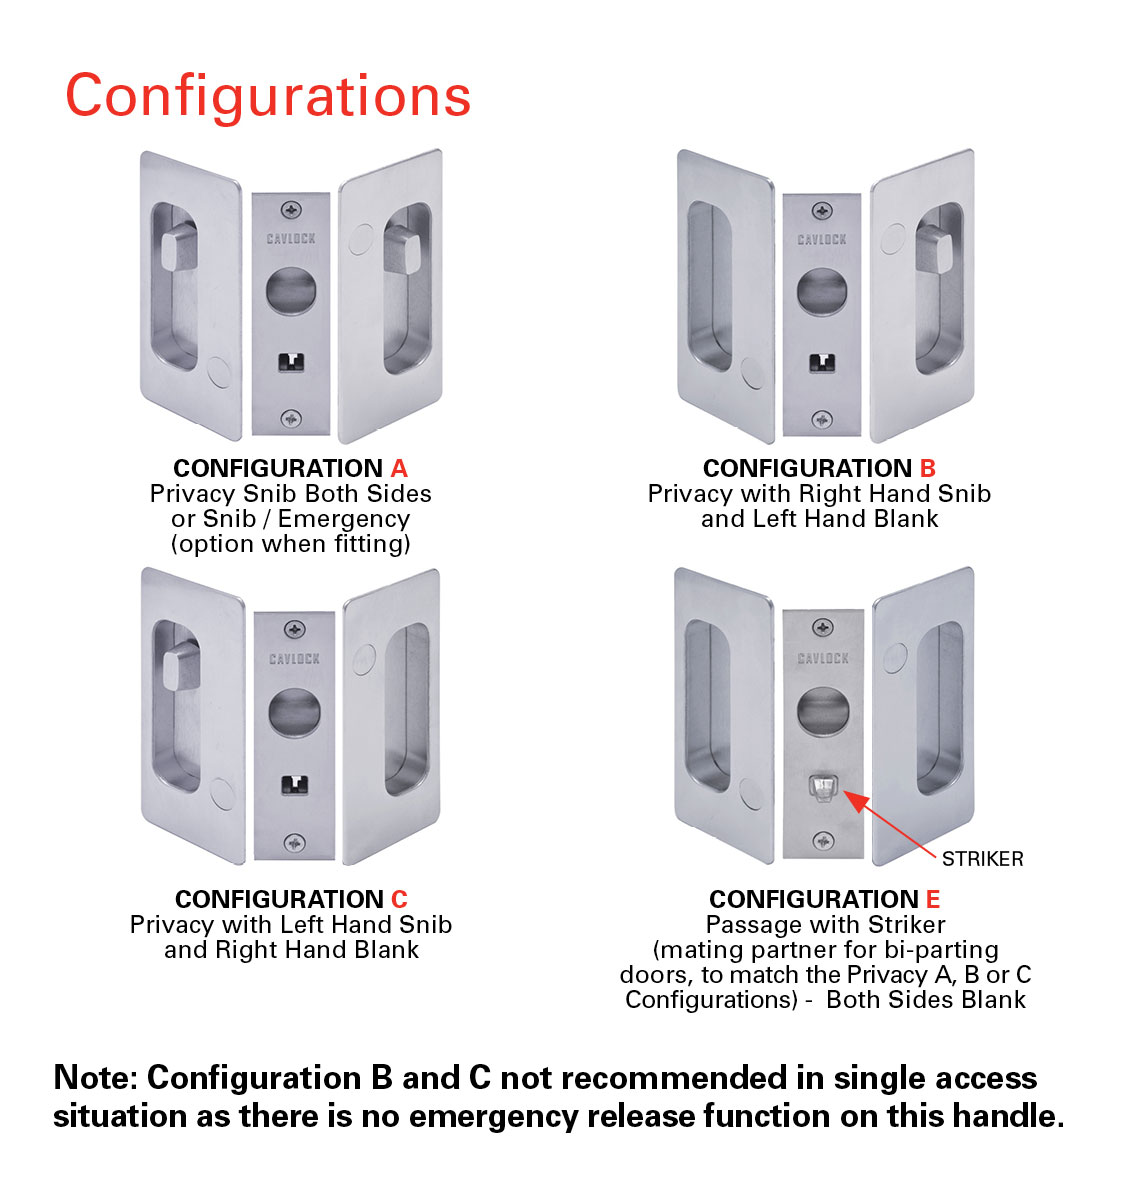 CL200 Privacy Configurations